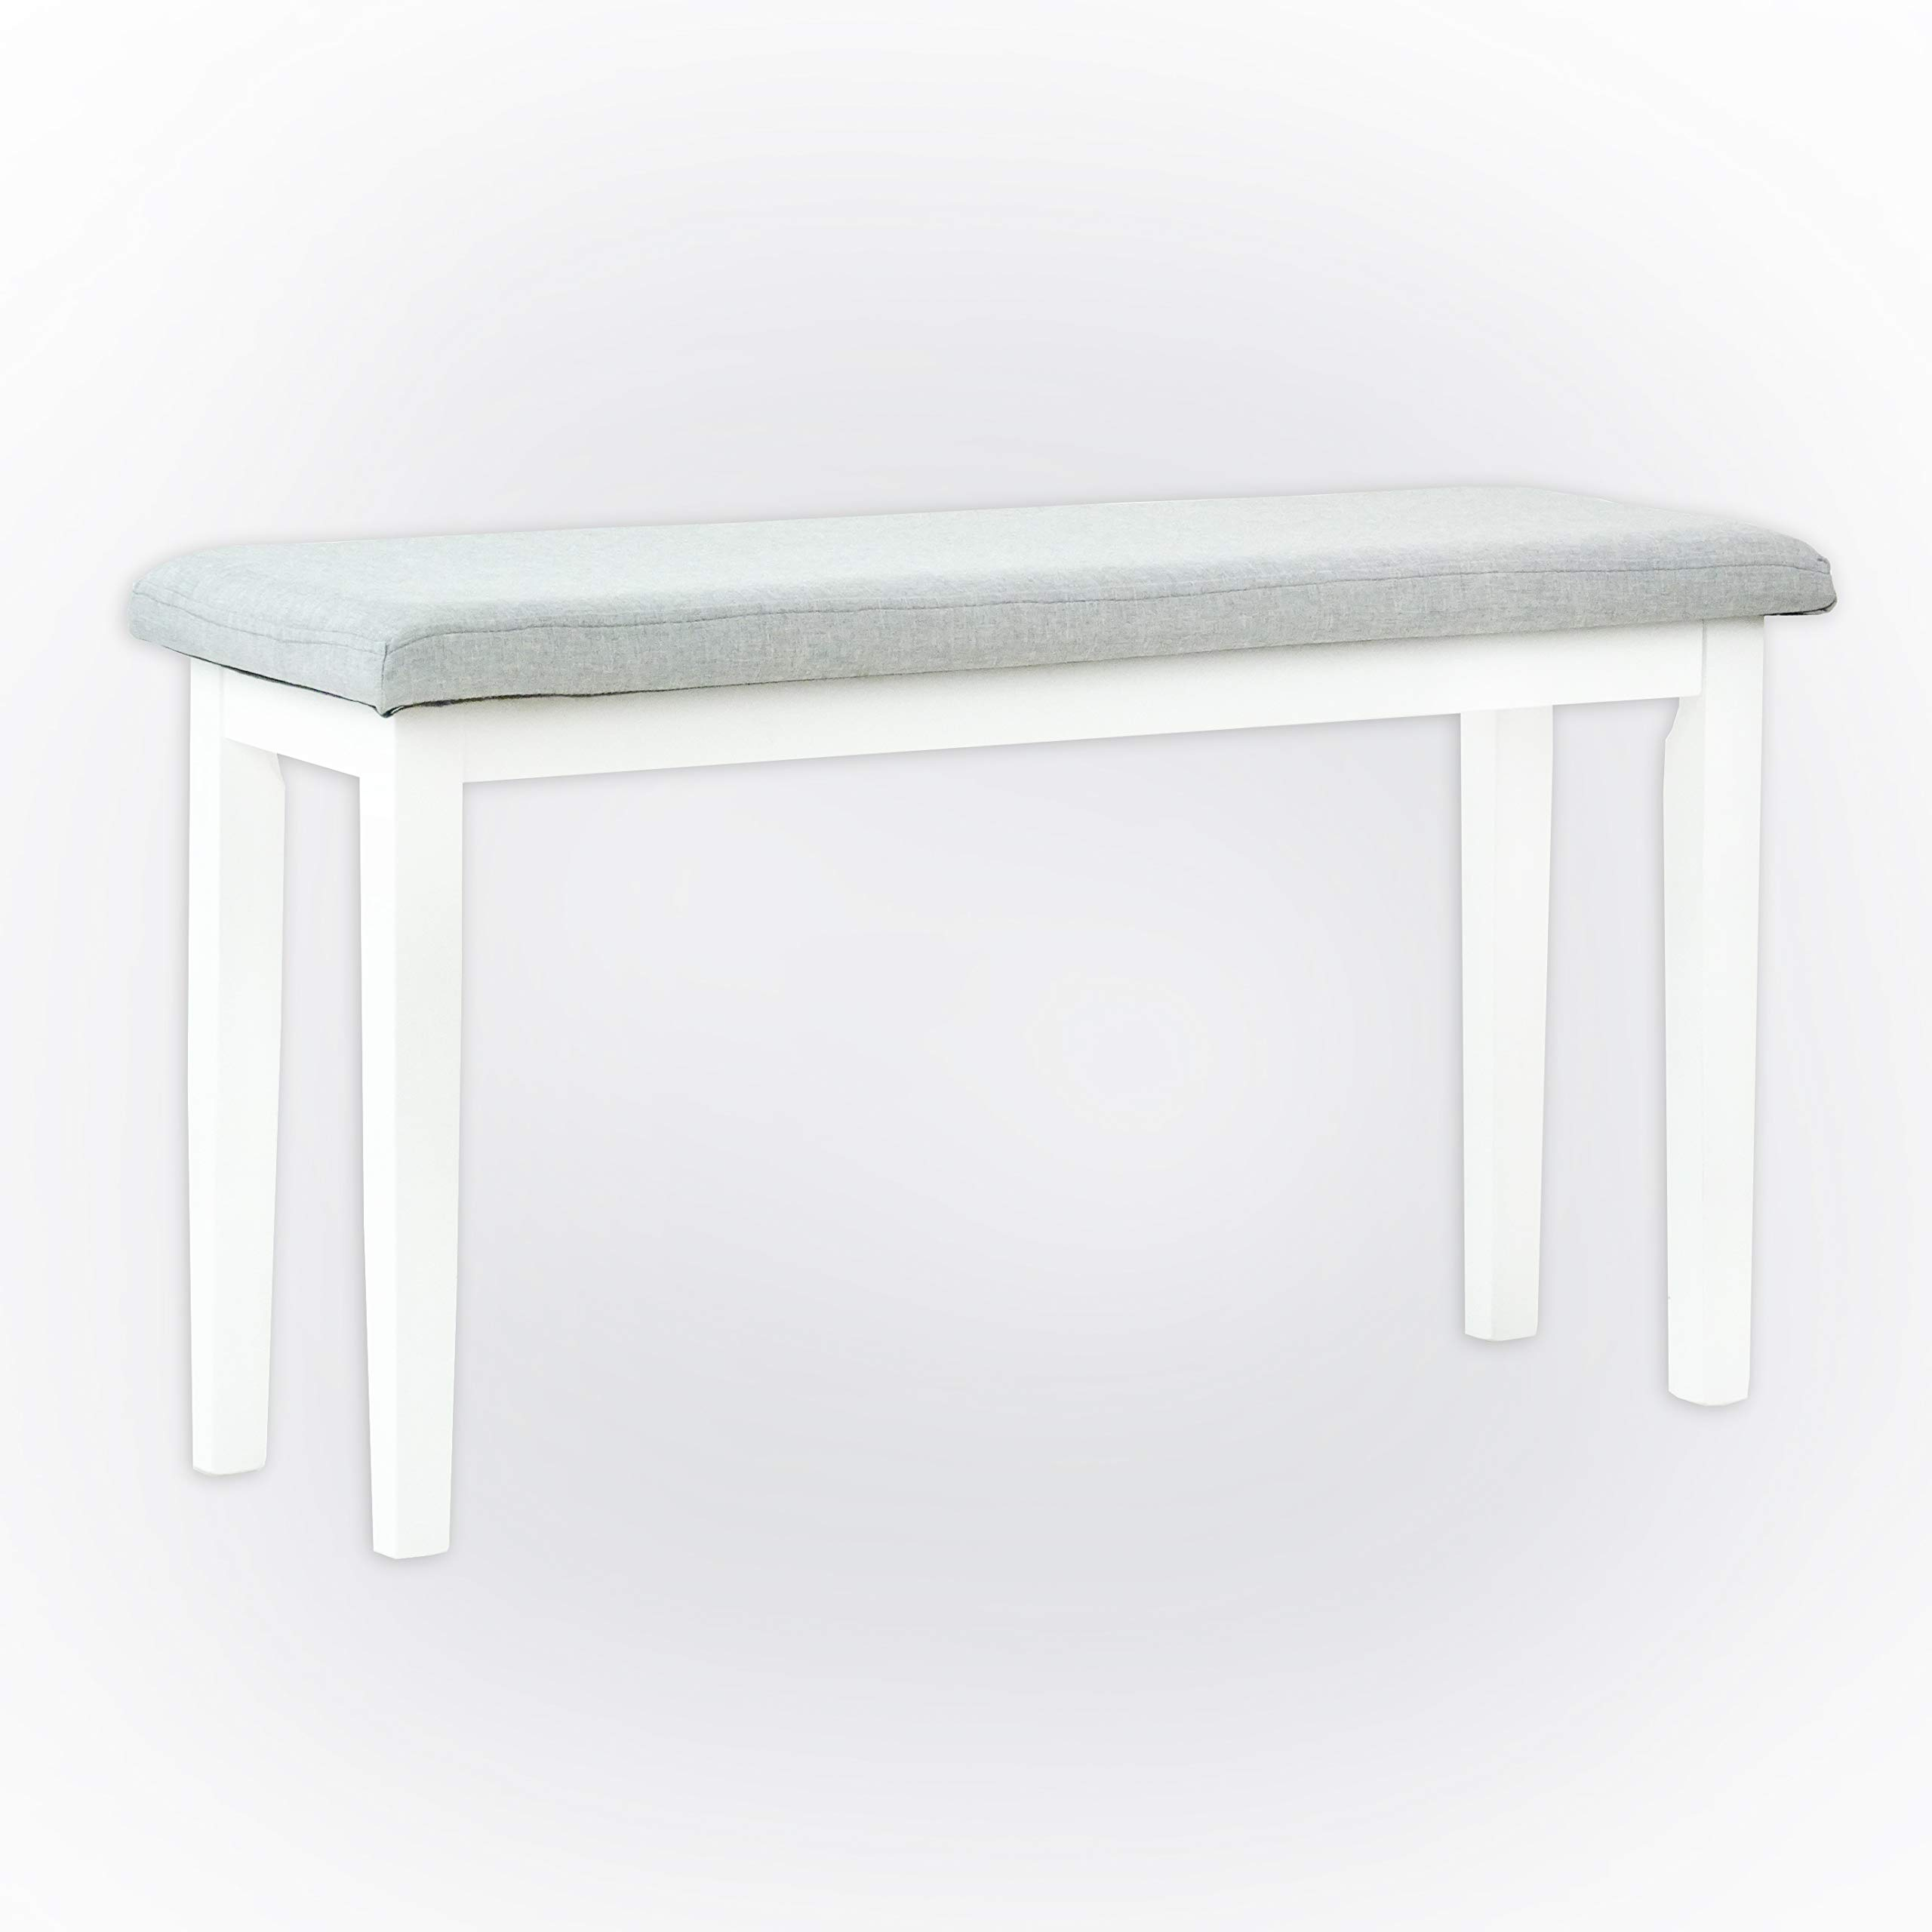 SunBear Furniture Dining Kitchen Solid Wooden Stained Bench Padded Seat White Finish